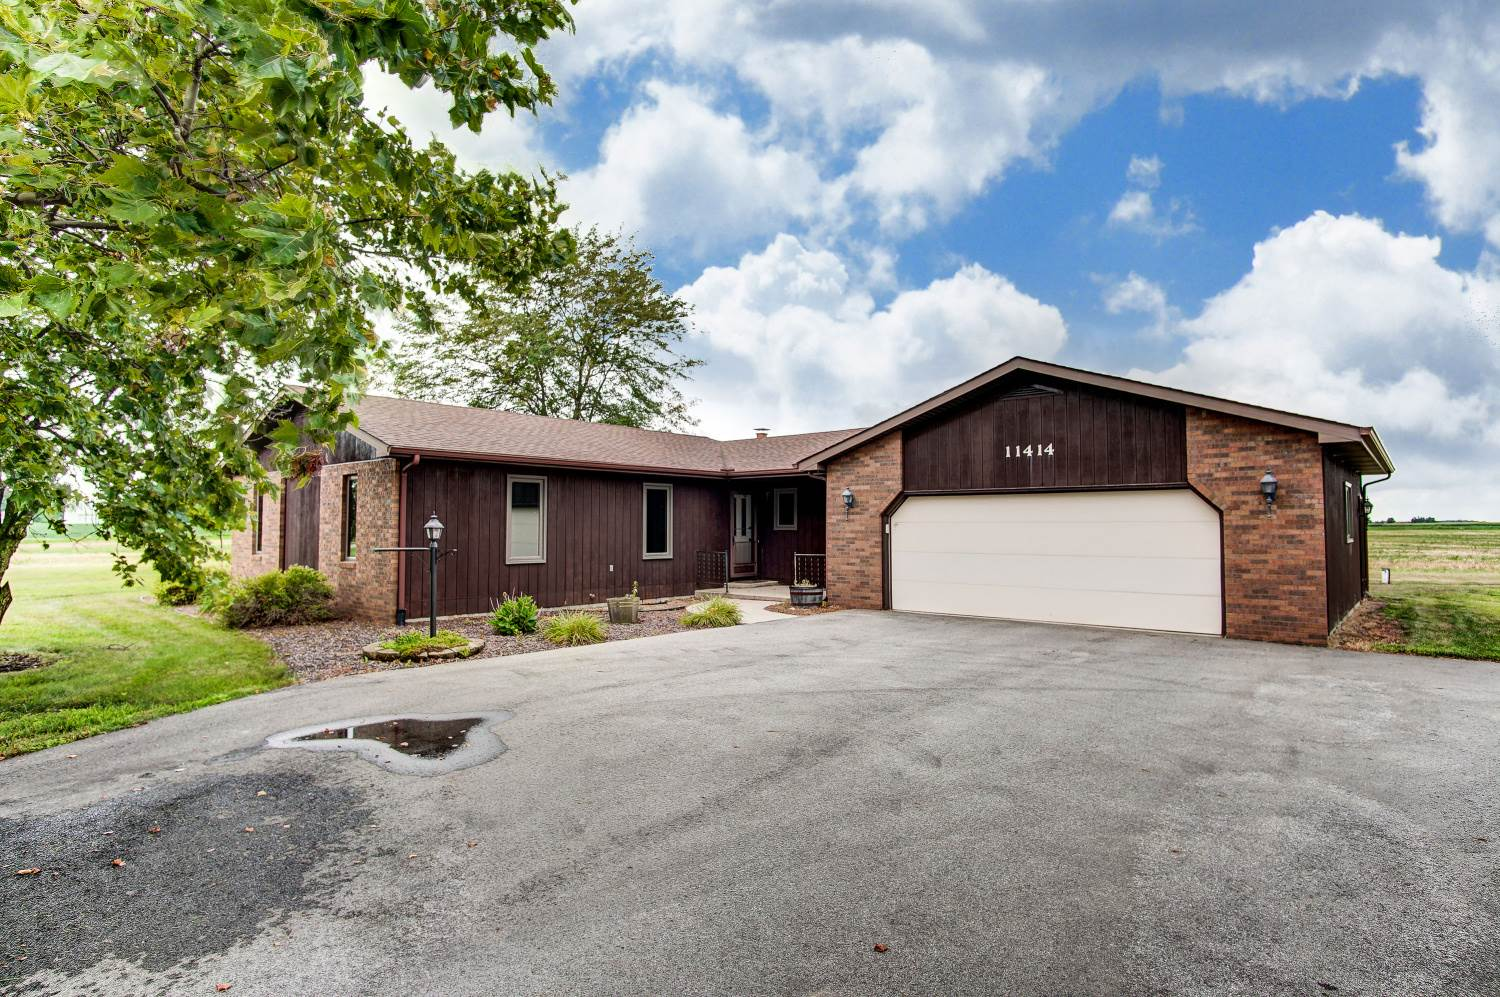 11414 State Road 101 Road, Monroeville, IN 46773